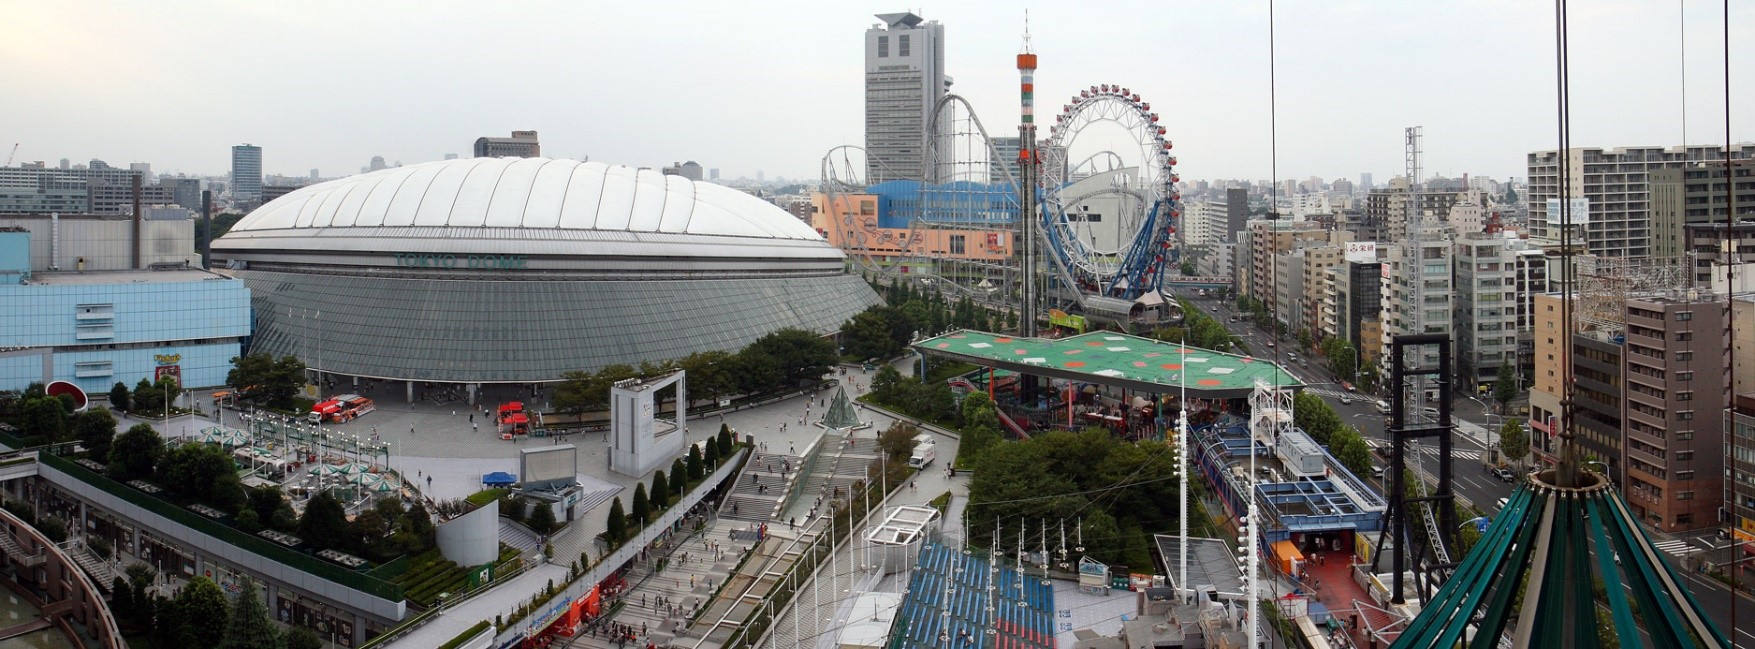 One Stop Transfer: Tokyo City to Tokyo Dome City